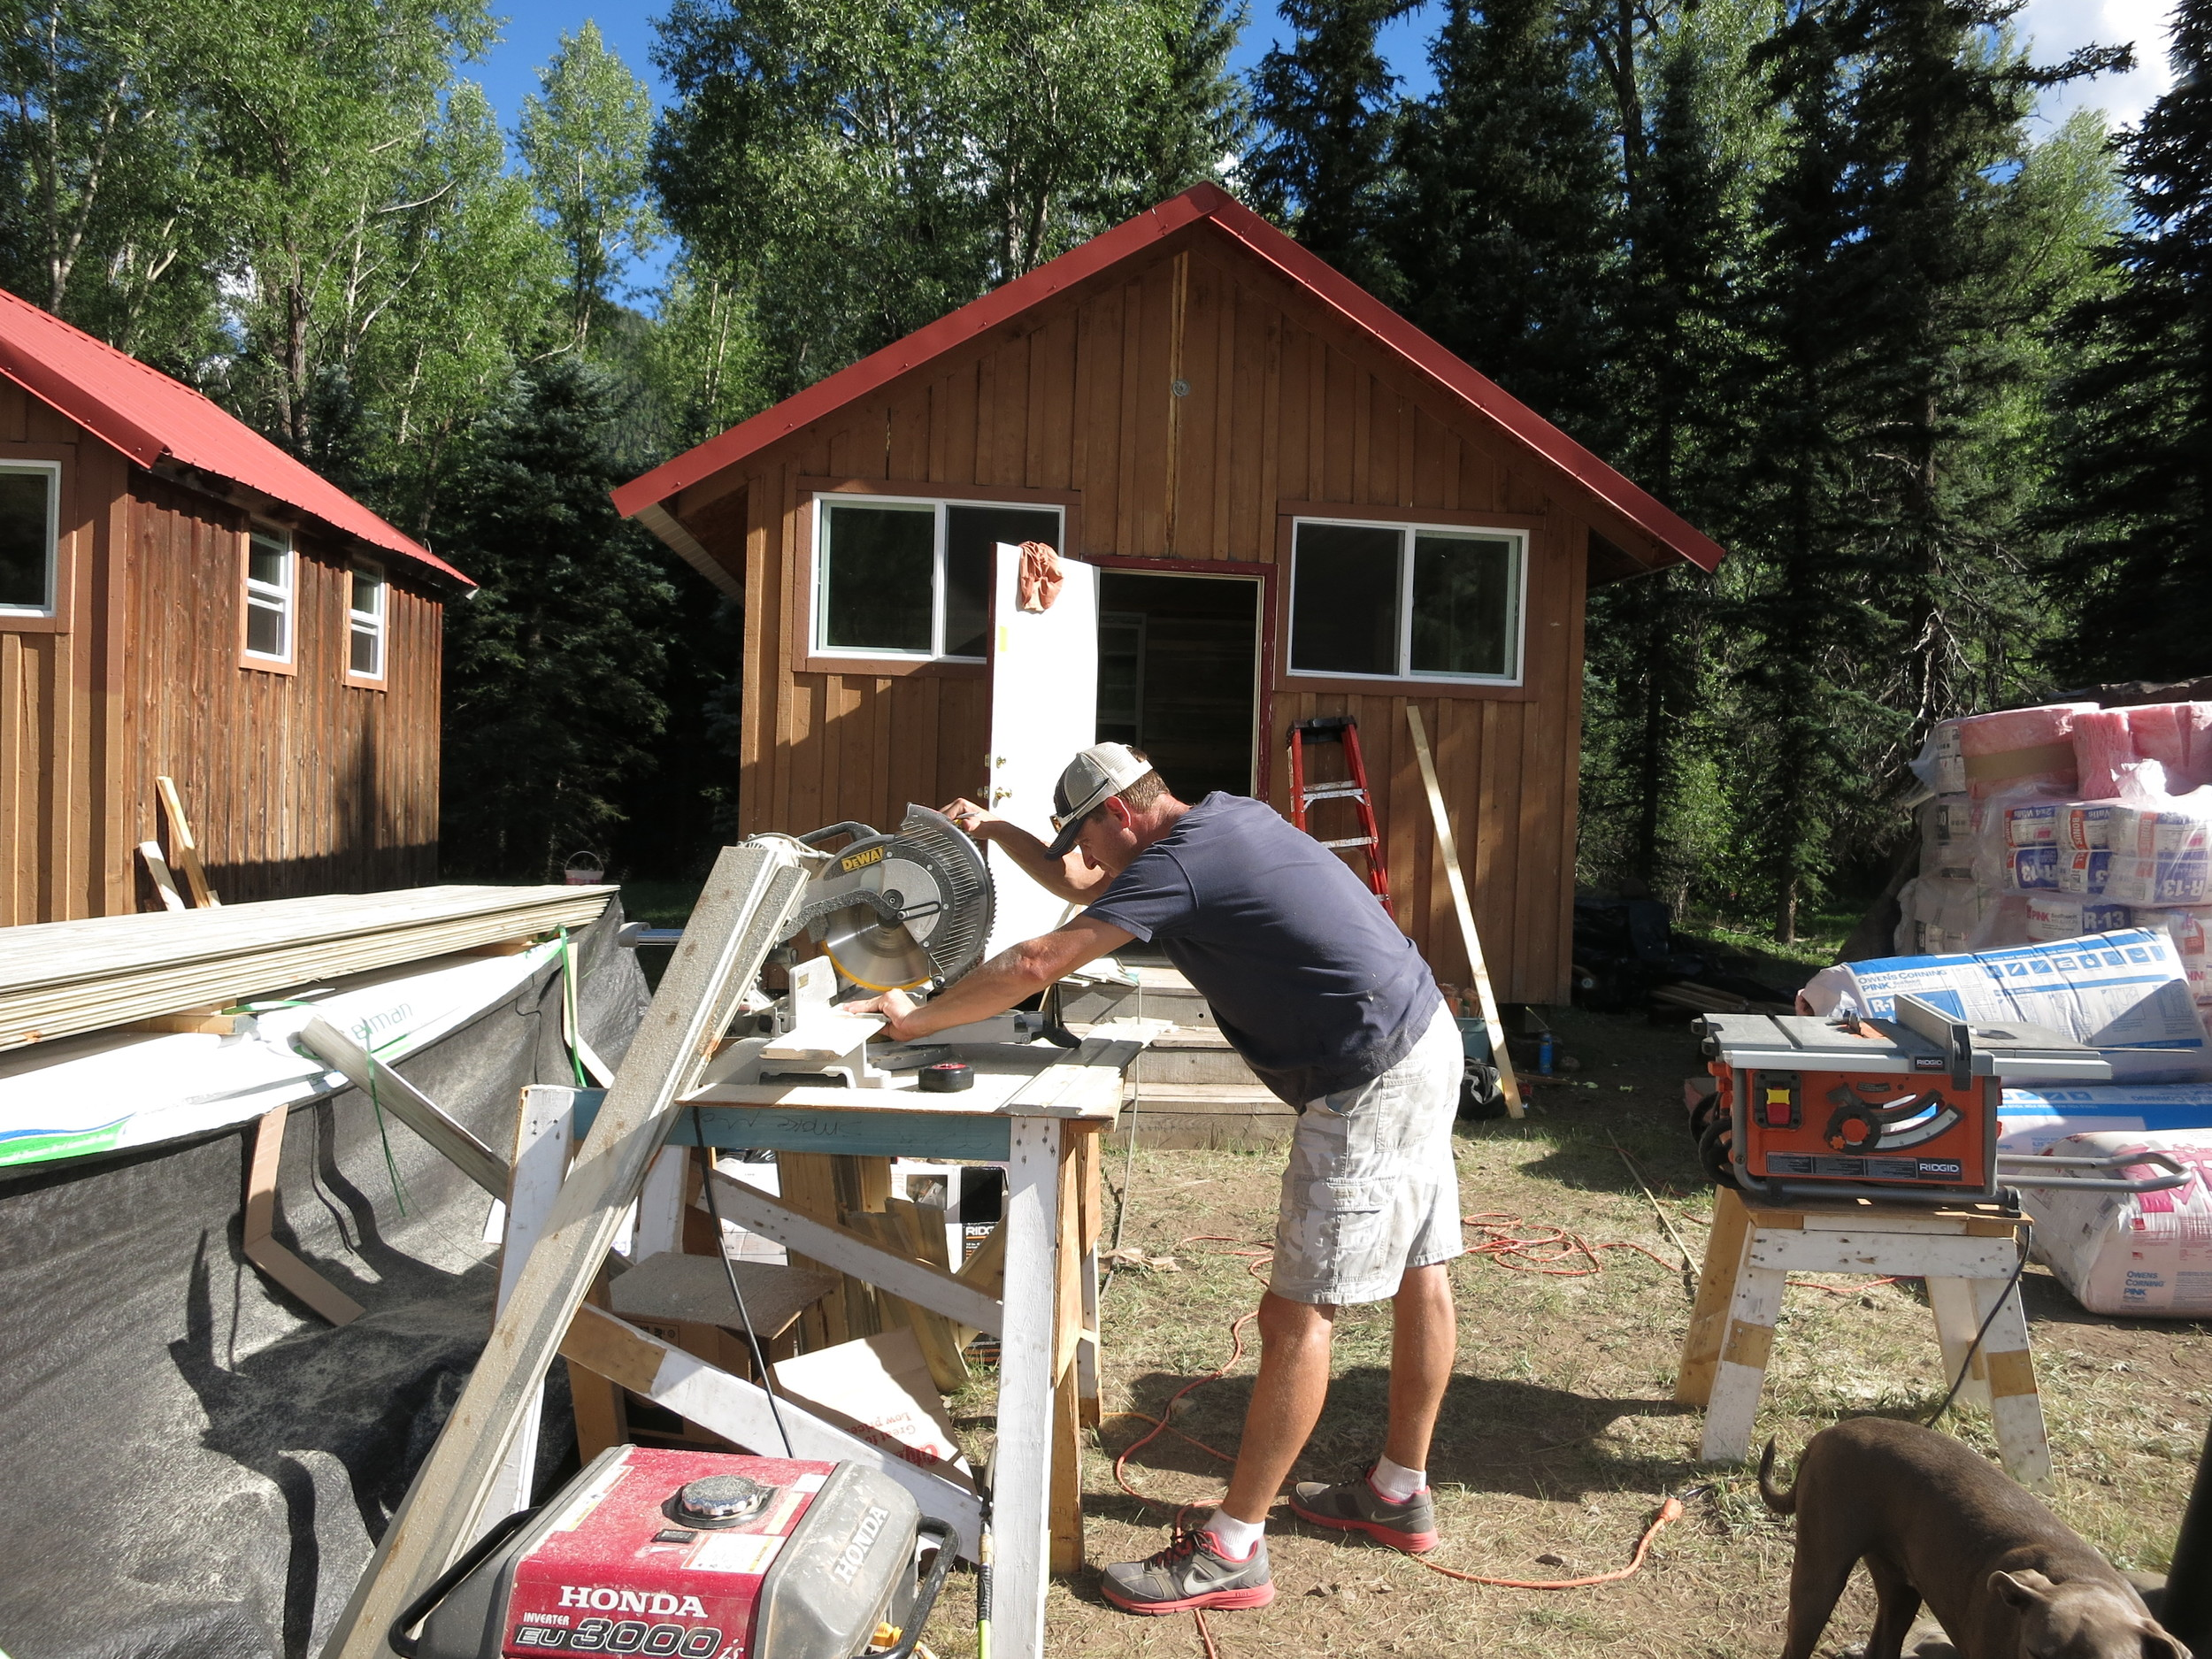 Lots of work is involved in bringing the old cabins back to life